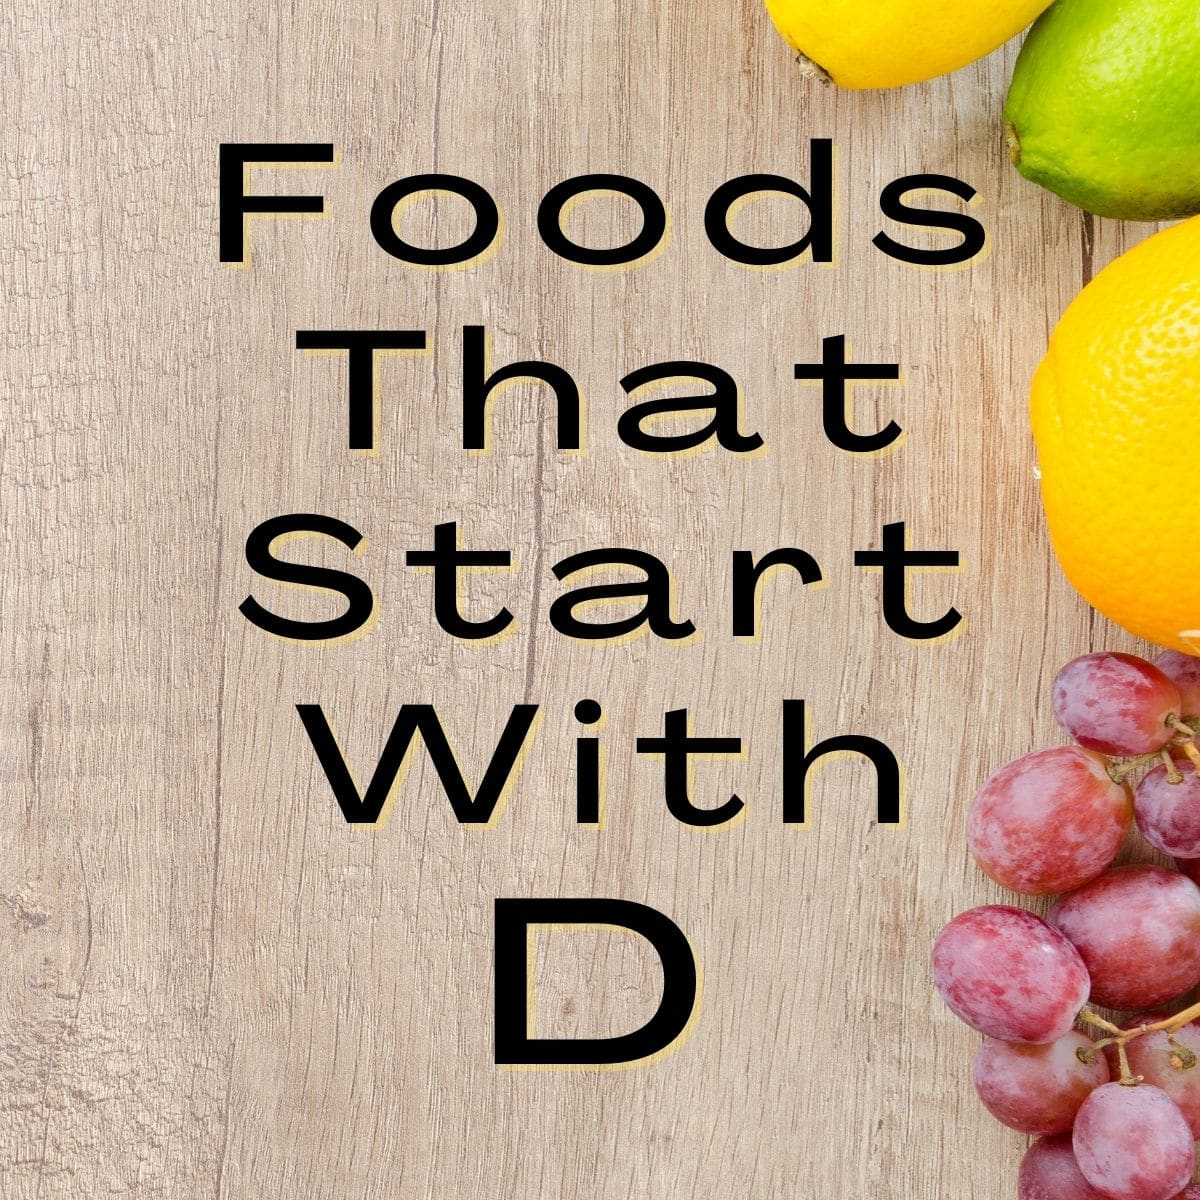 Foods that begin with the letter d text on a wood backgound.